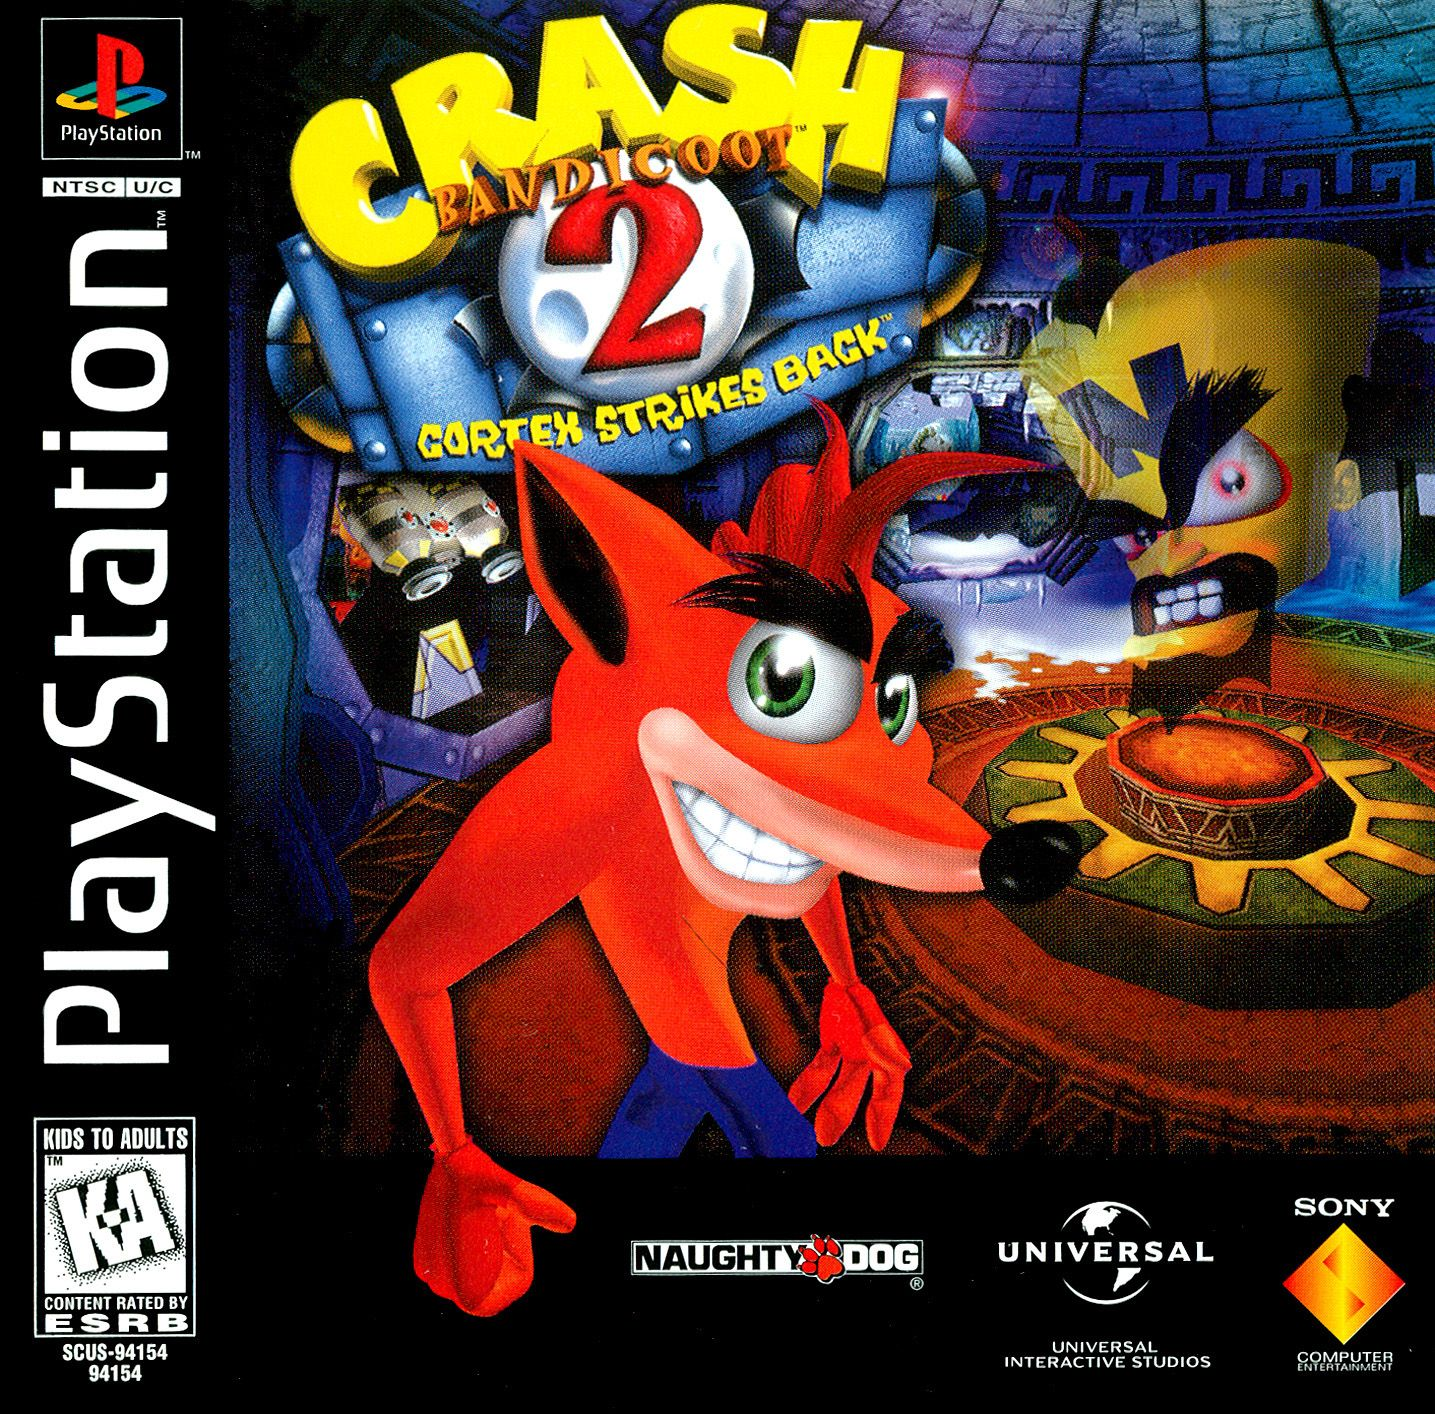 Crash Bandicoot 2 Cortex Strikes Back Crash Bandicoot 2 Crash